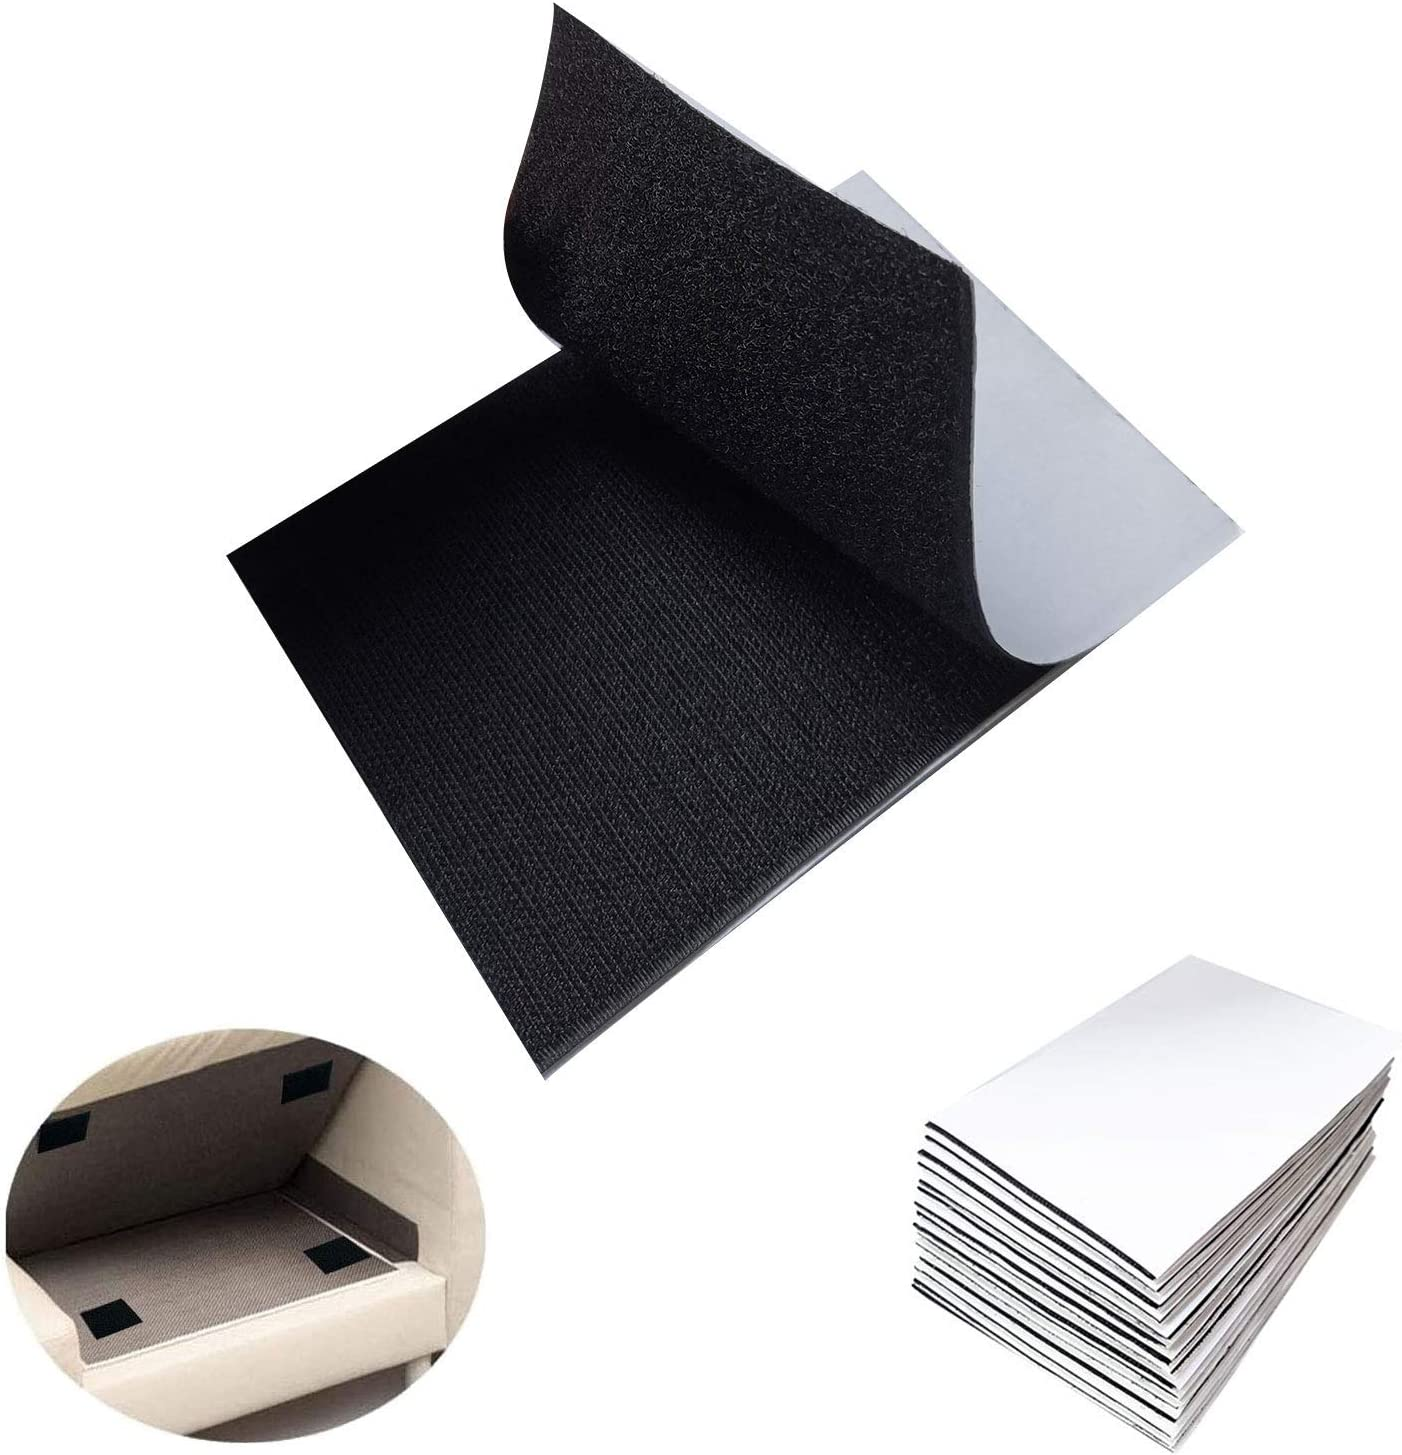 15 Packs Hook and Loop Tape, 4 x 6 inch Hook Loop Strips Self Adhesive Non Slip Sticky Back Mounting Tape,30 Pcs Double-Side Couch Hook Loop Tape Chair Pads